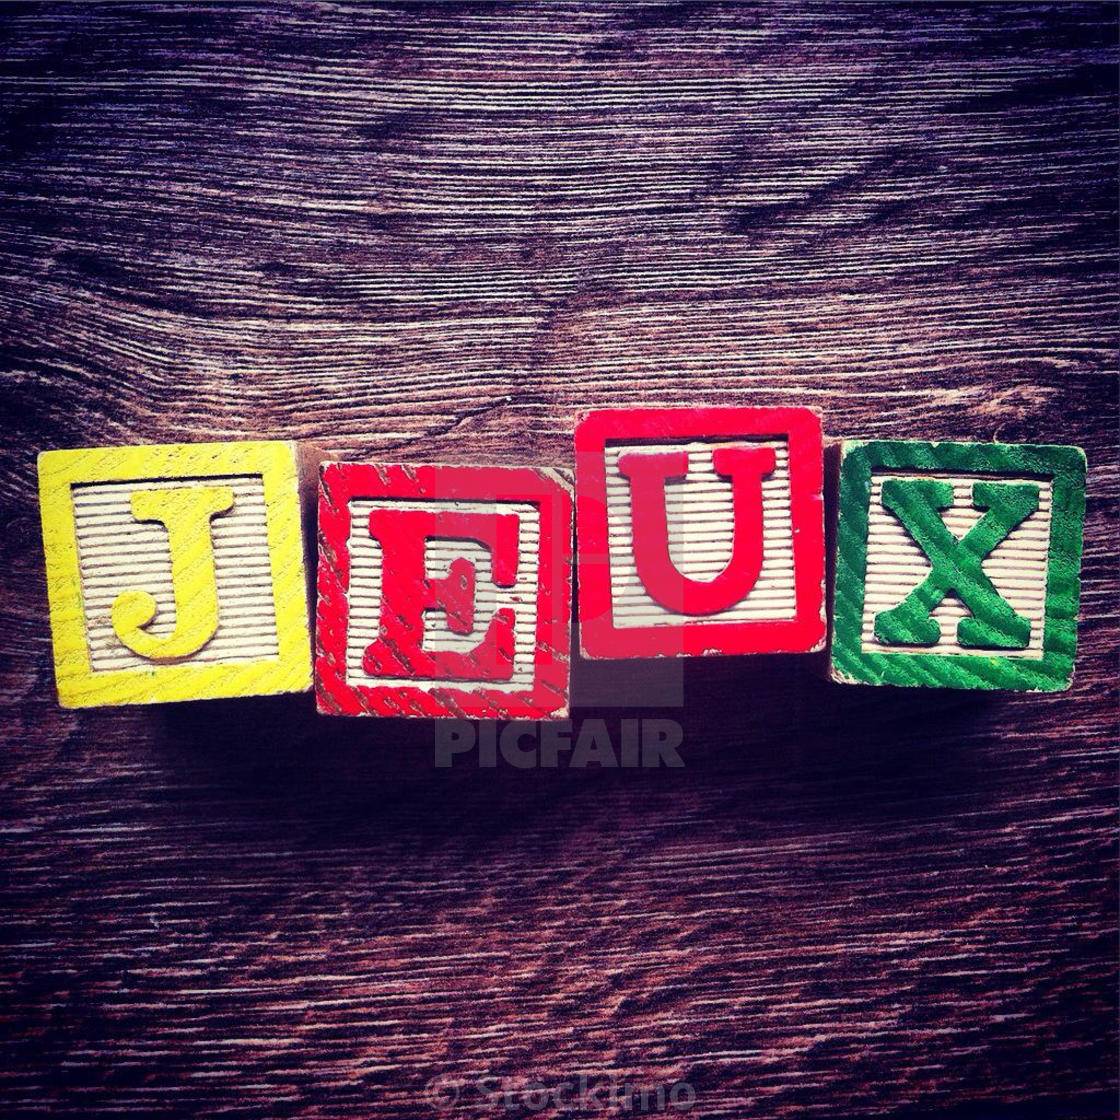 French Word Jeux Meaning Games Done With Alphabet Wood Blocks